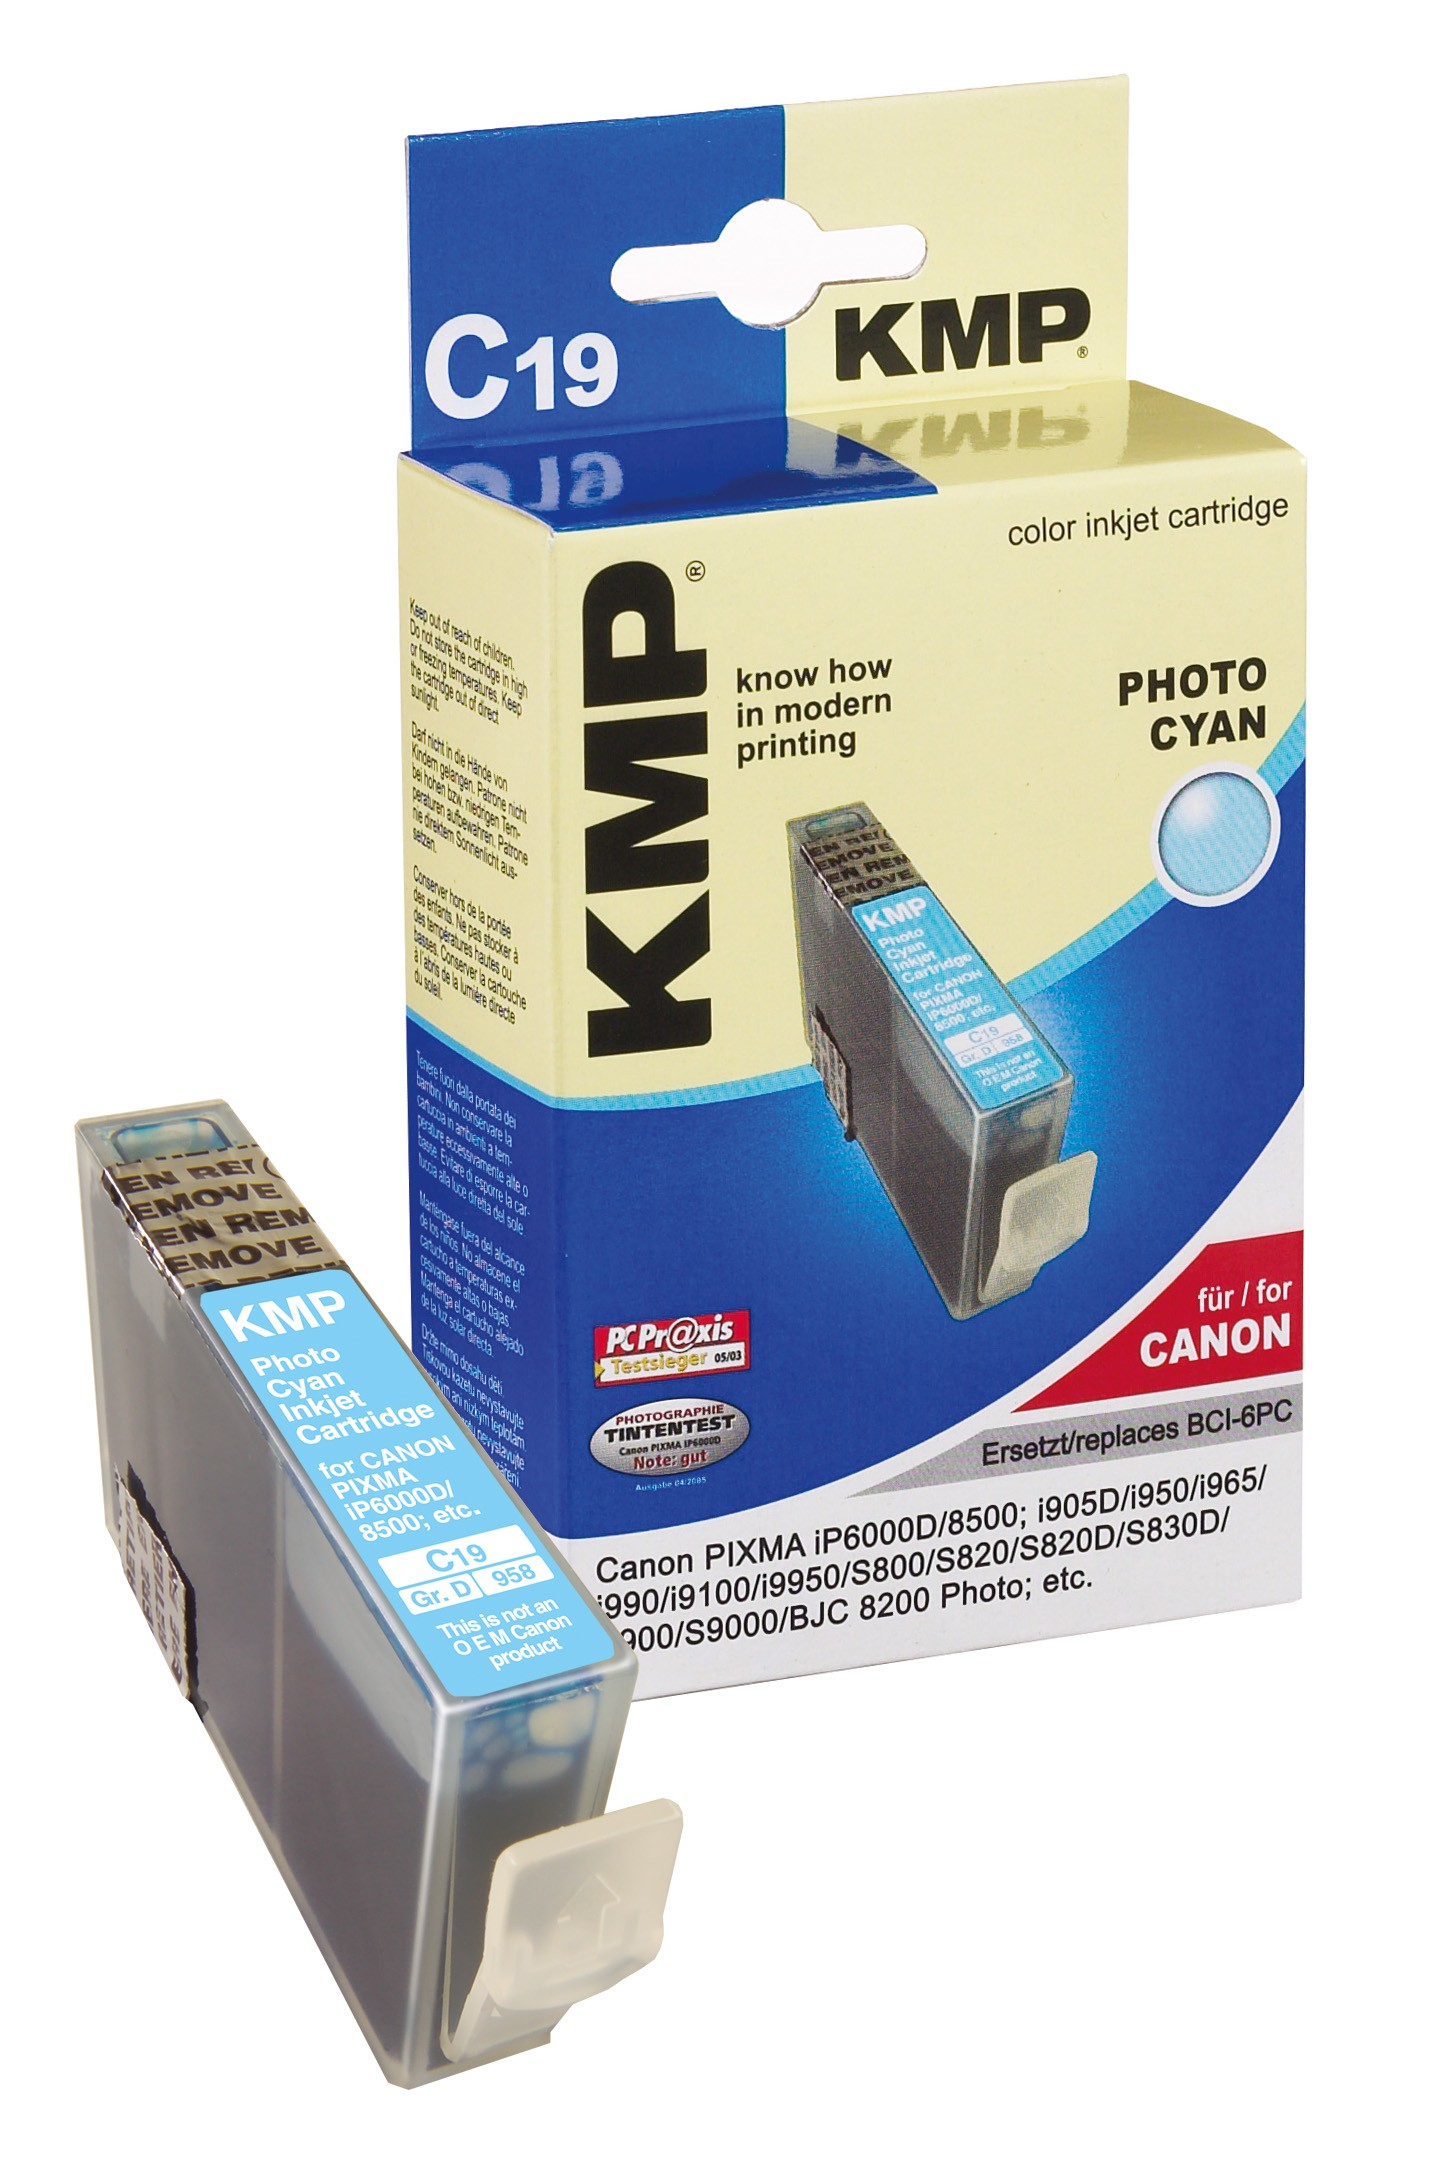 KMP C19 ink cartridge photo cyan compatible with Canon BCI-6 PC